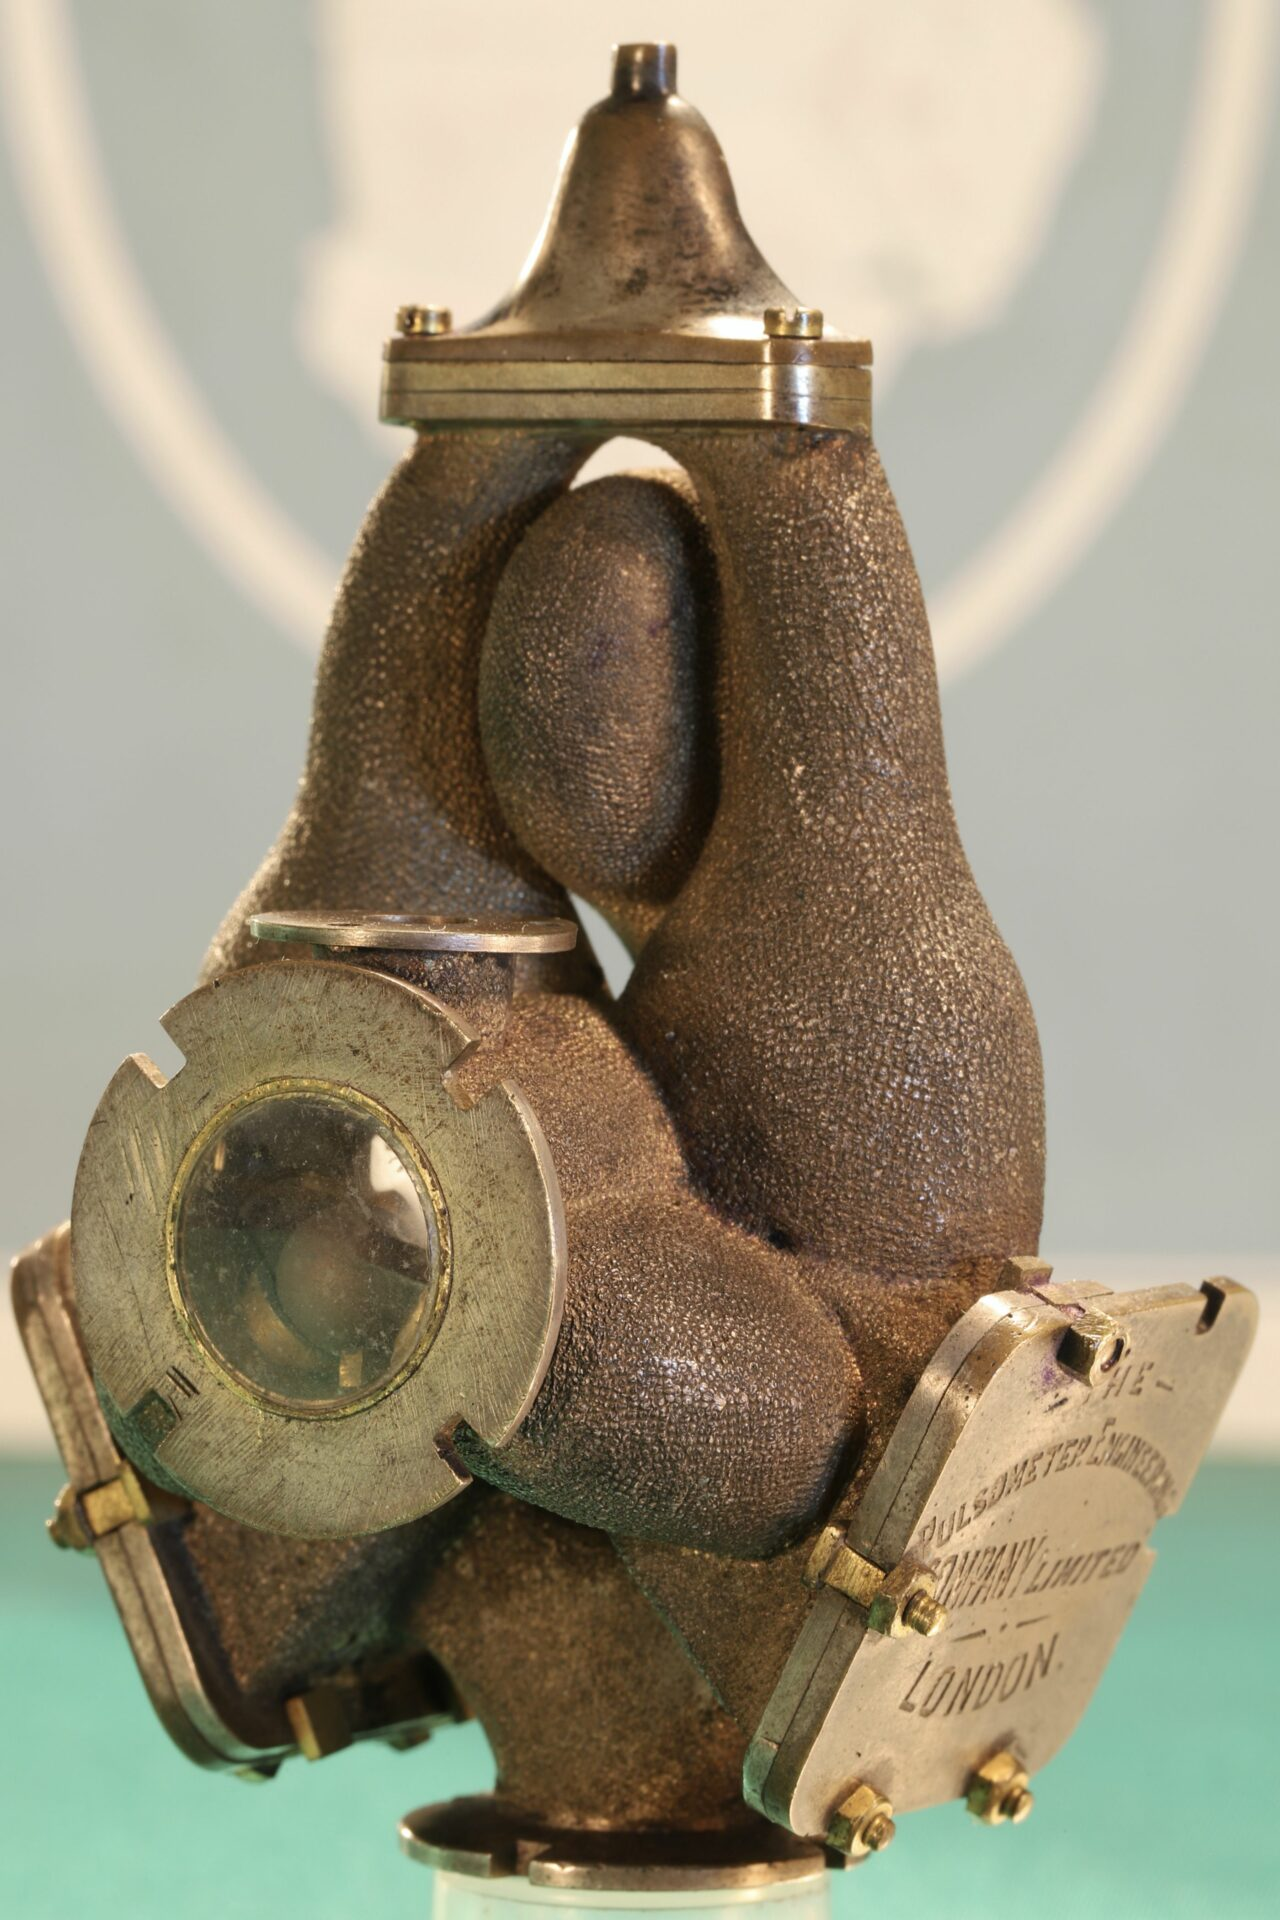 Image of front of Pulsometer Steam Pump Model c1905 taken from righthand side